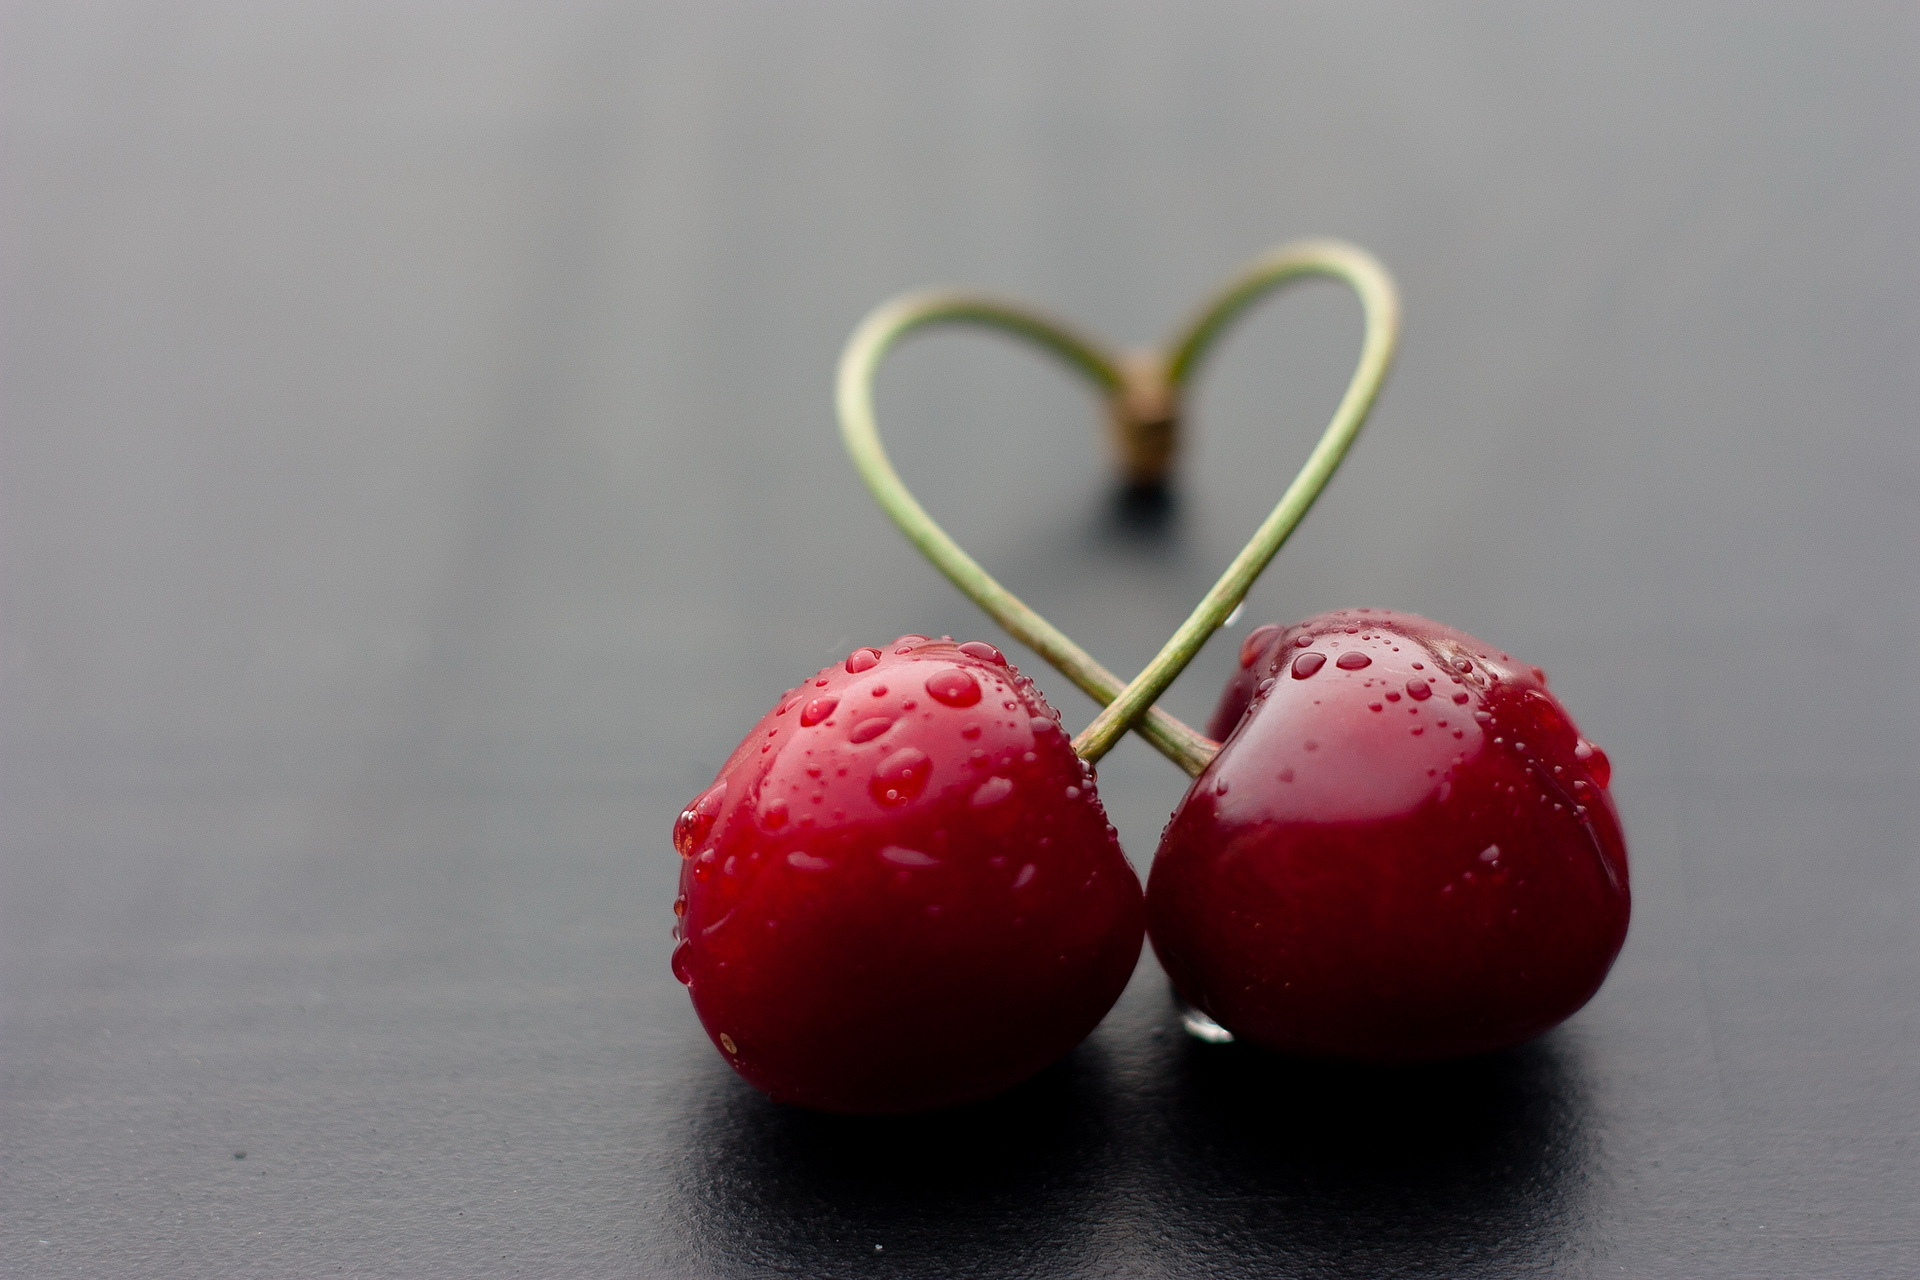 Cute Love Wallpapers 7741 Hd Wallpapers Pictures to pin on 1920x1280